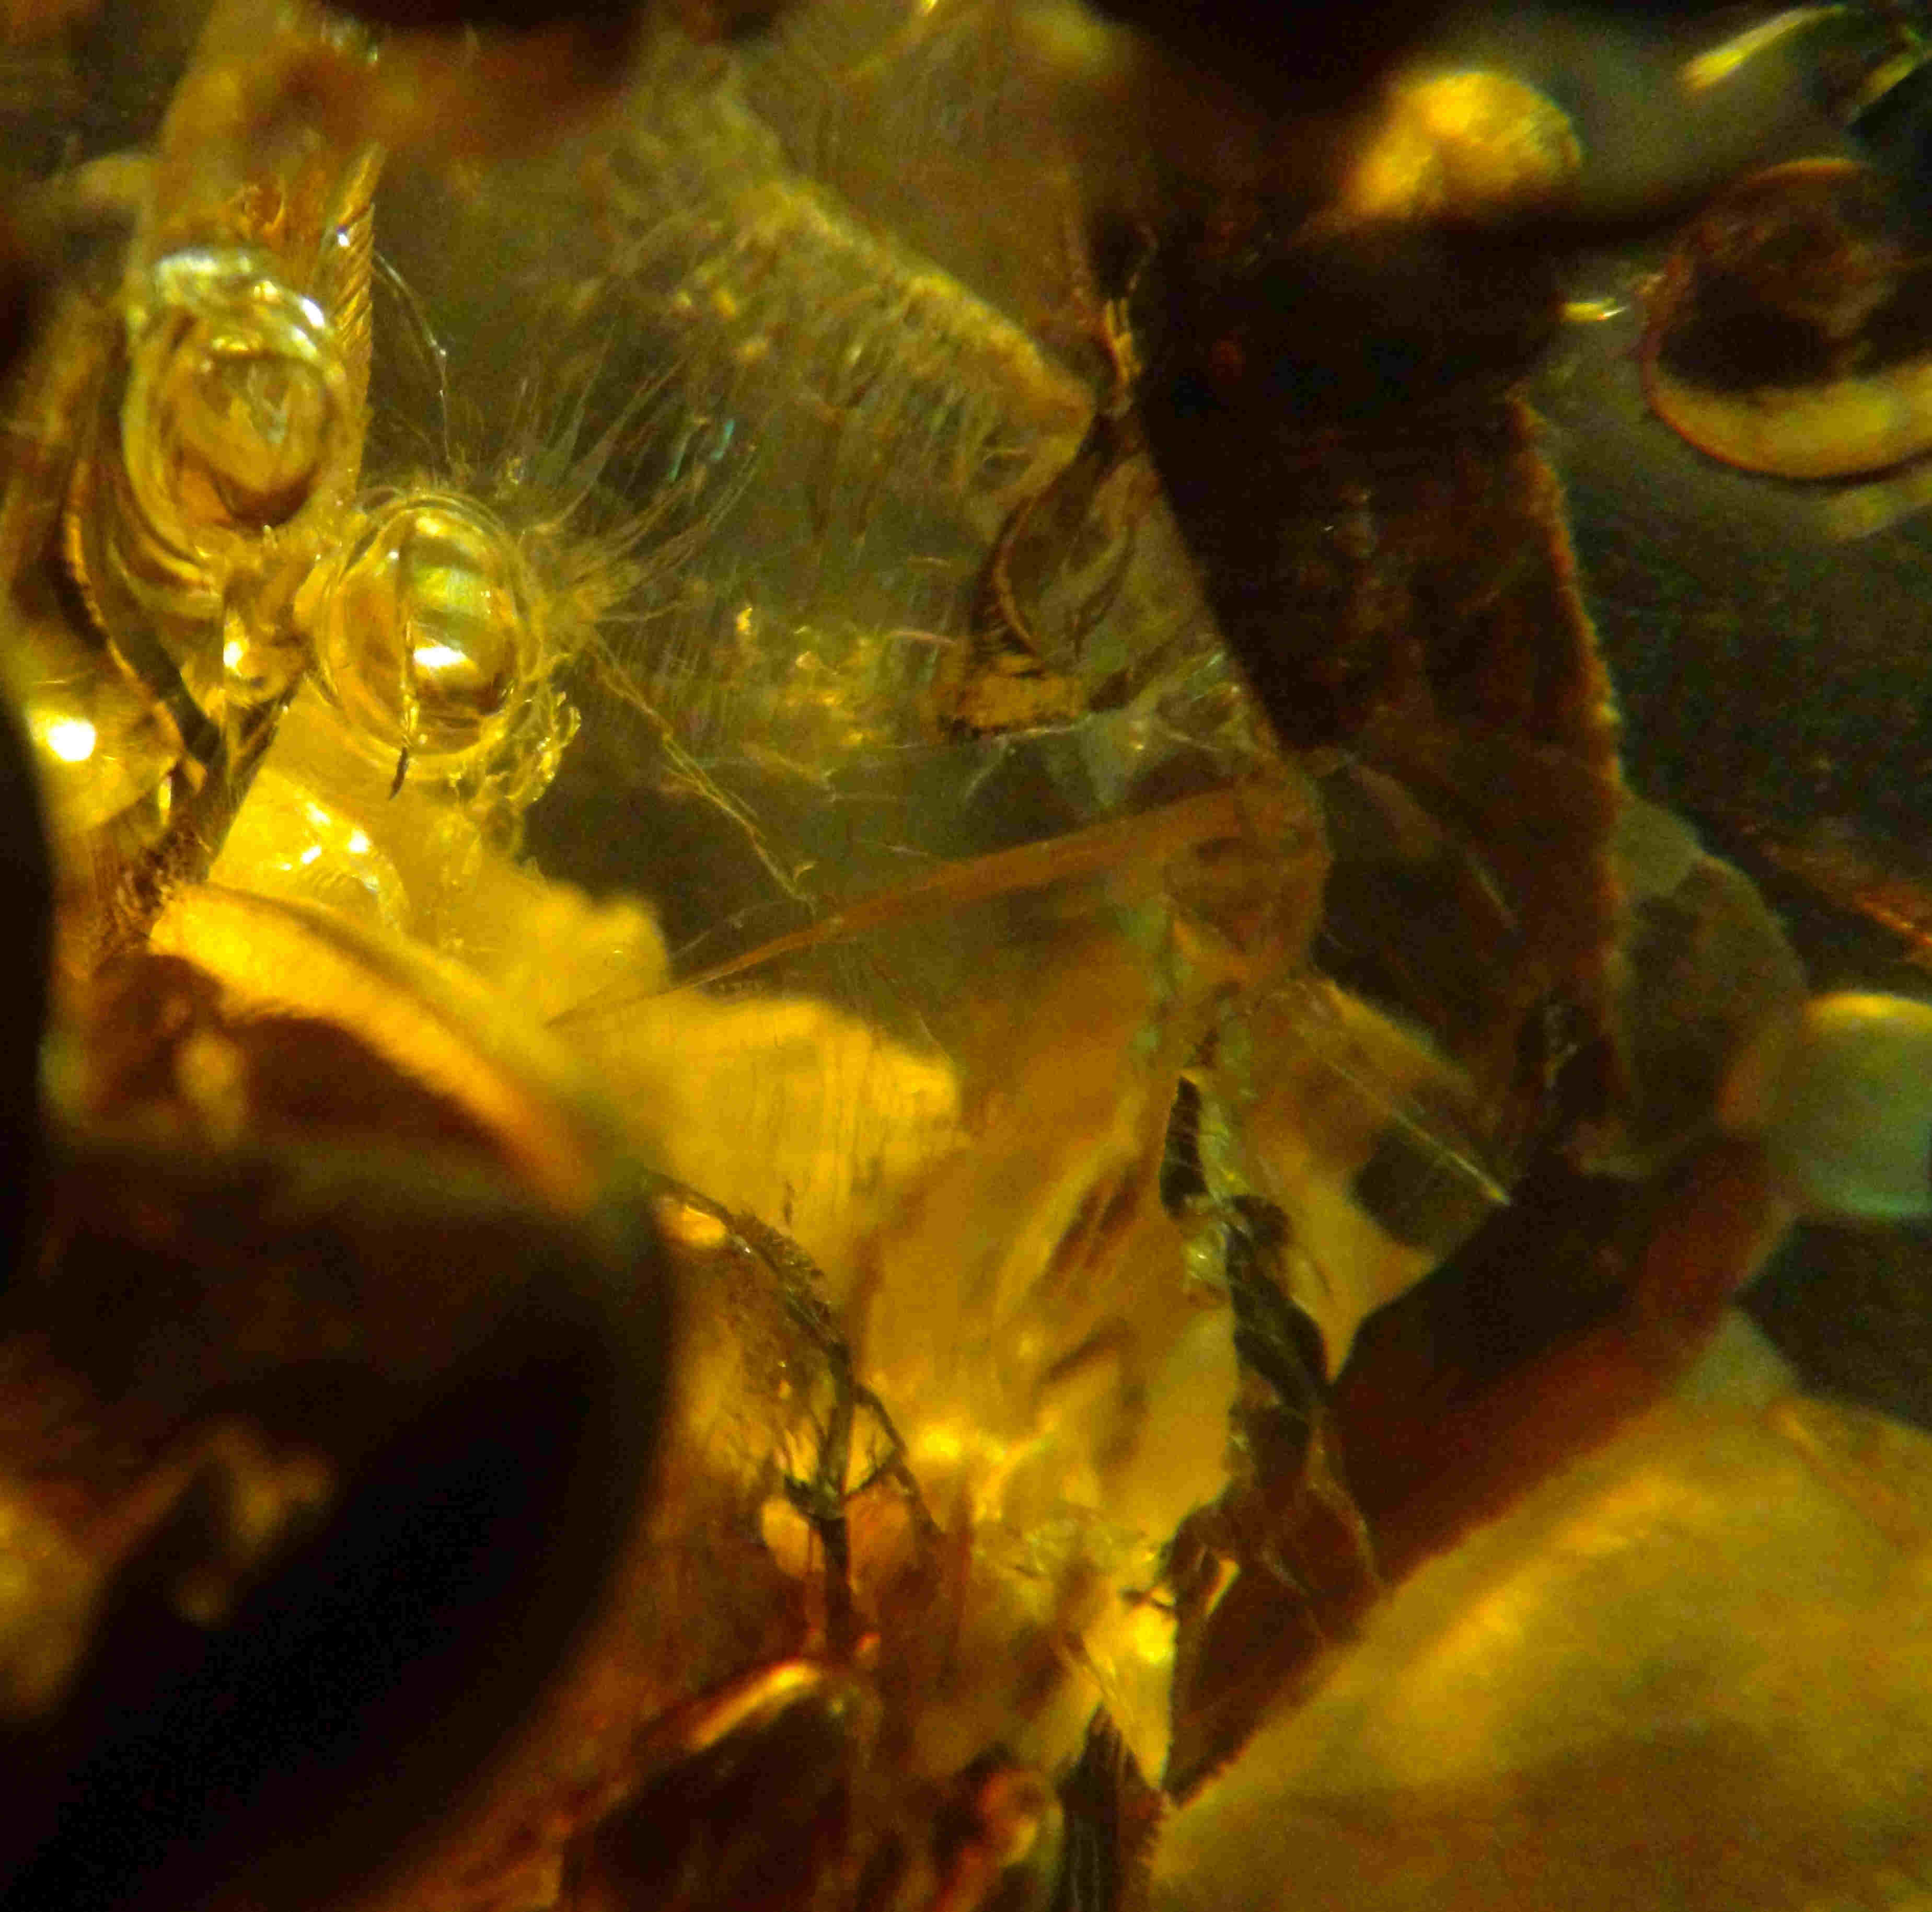 Worm in amber